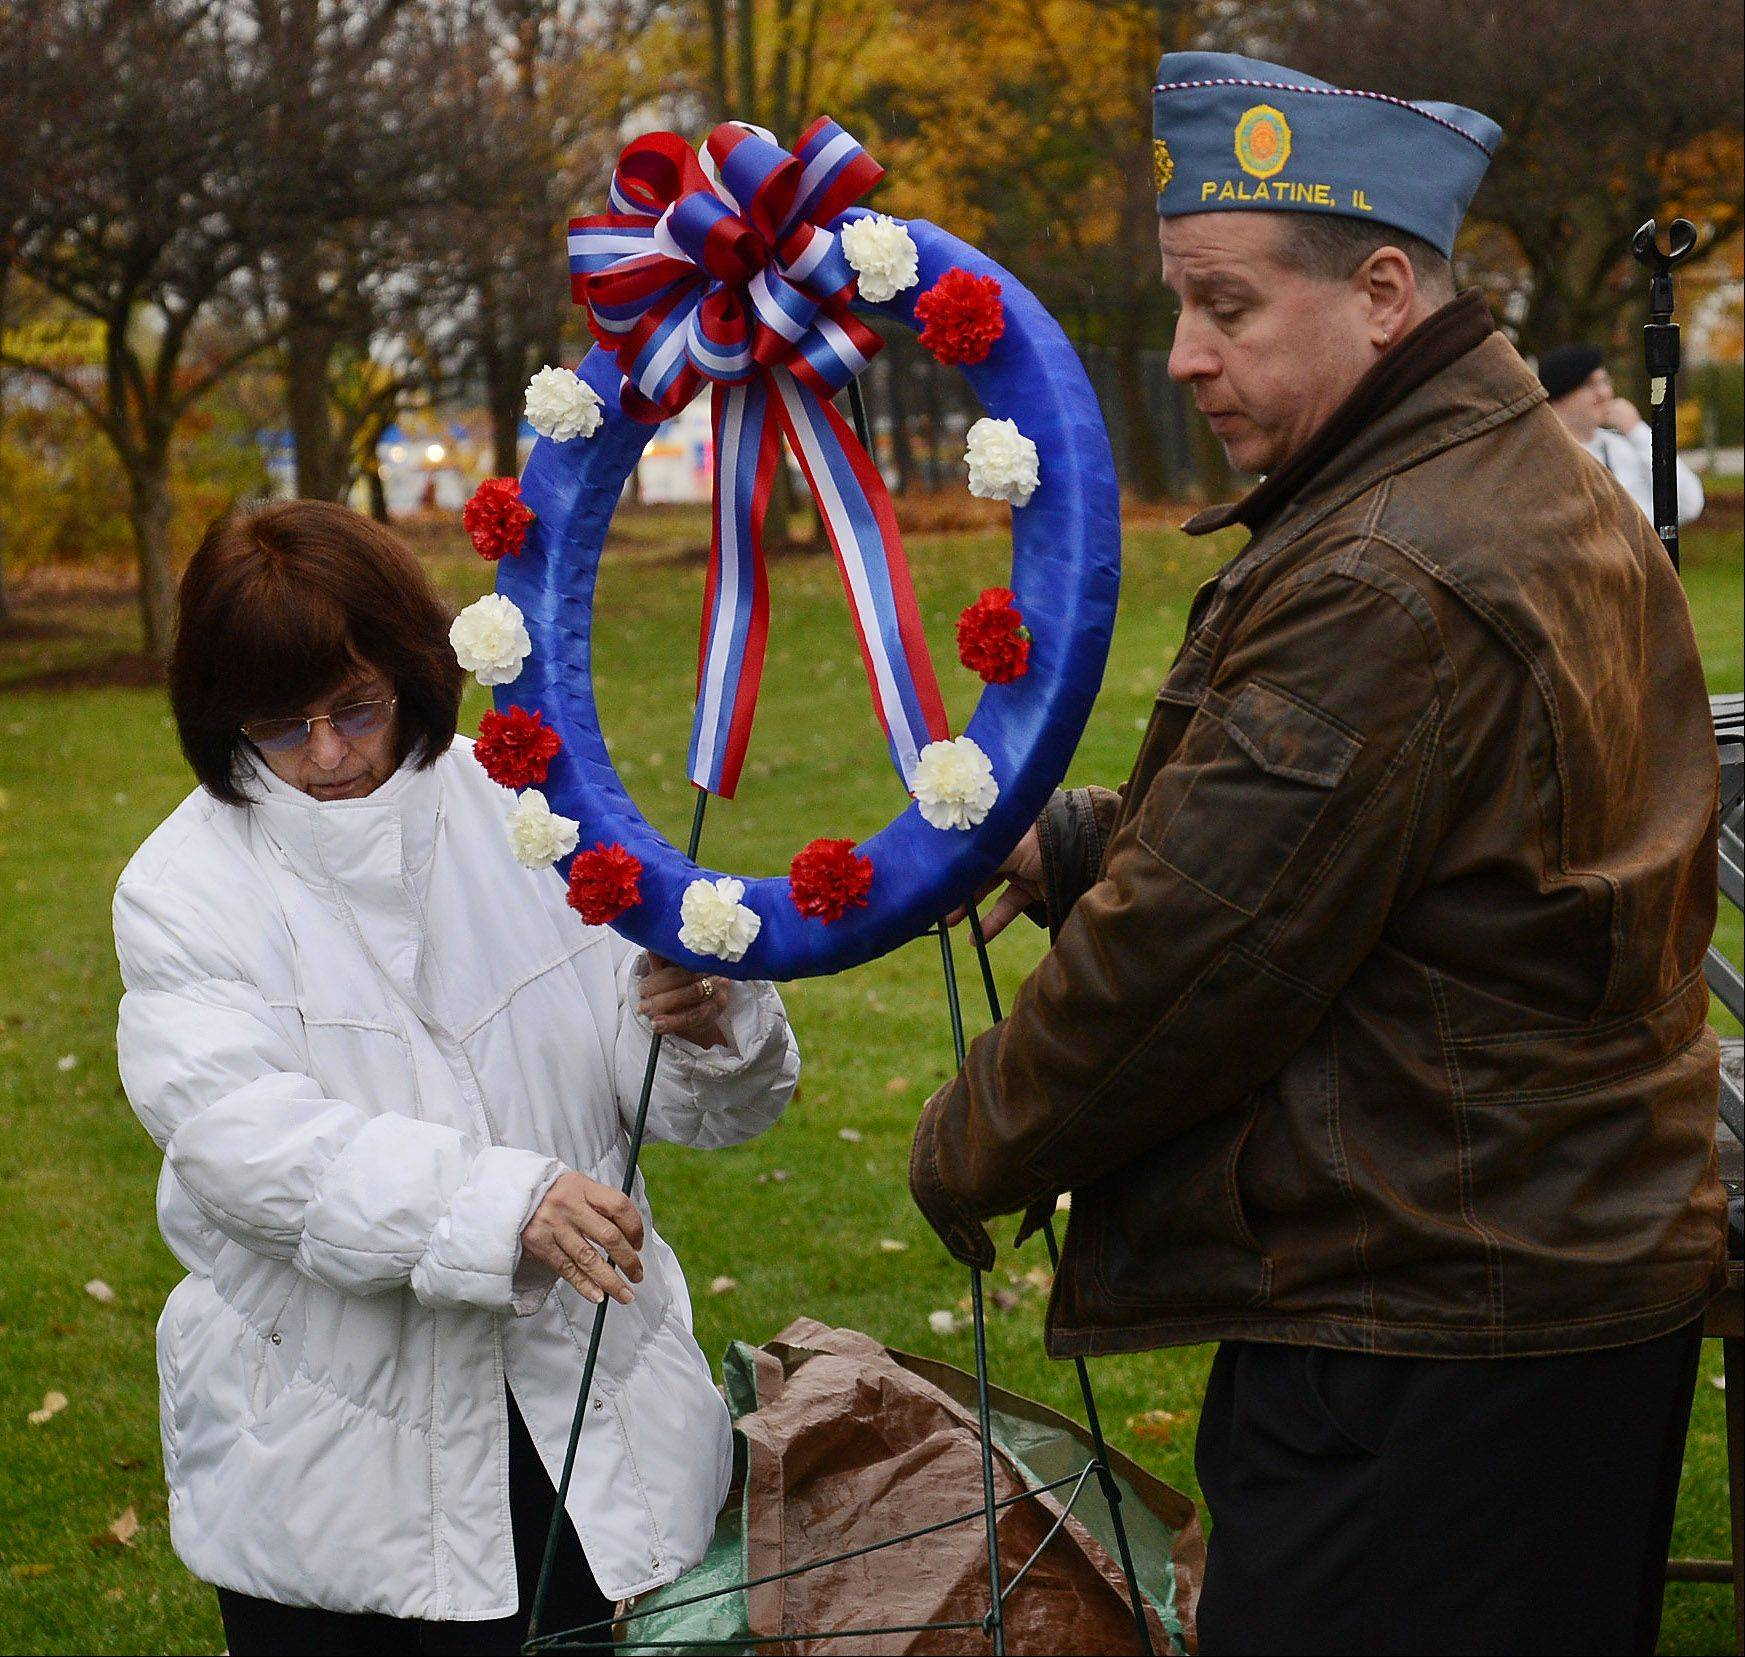 Women's Auxillary President Pat Kowalski and Jim Paschke of Palatine Post 690 place a wreath at the memorial during Palatine Veterans Day observance at Community Park.